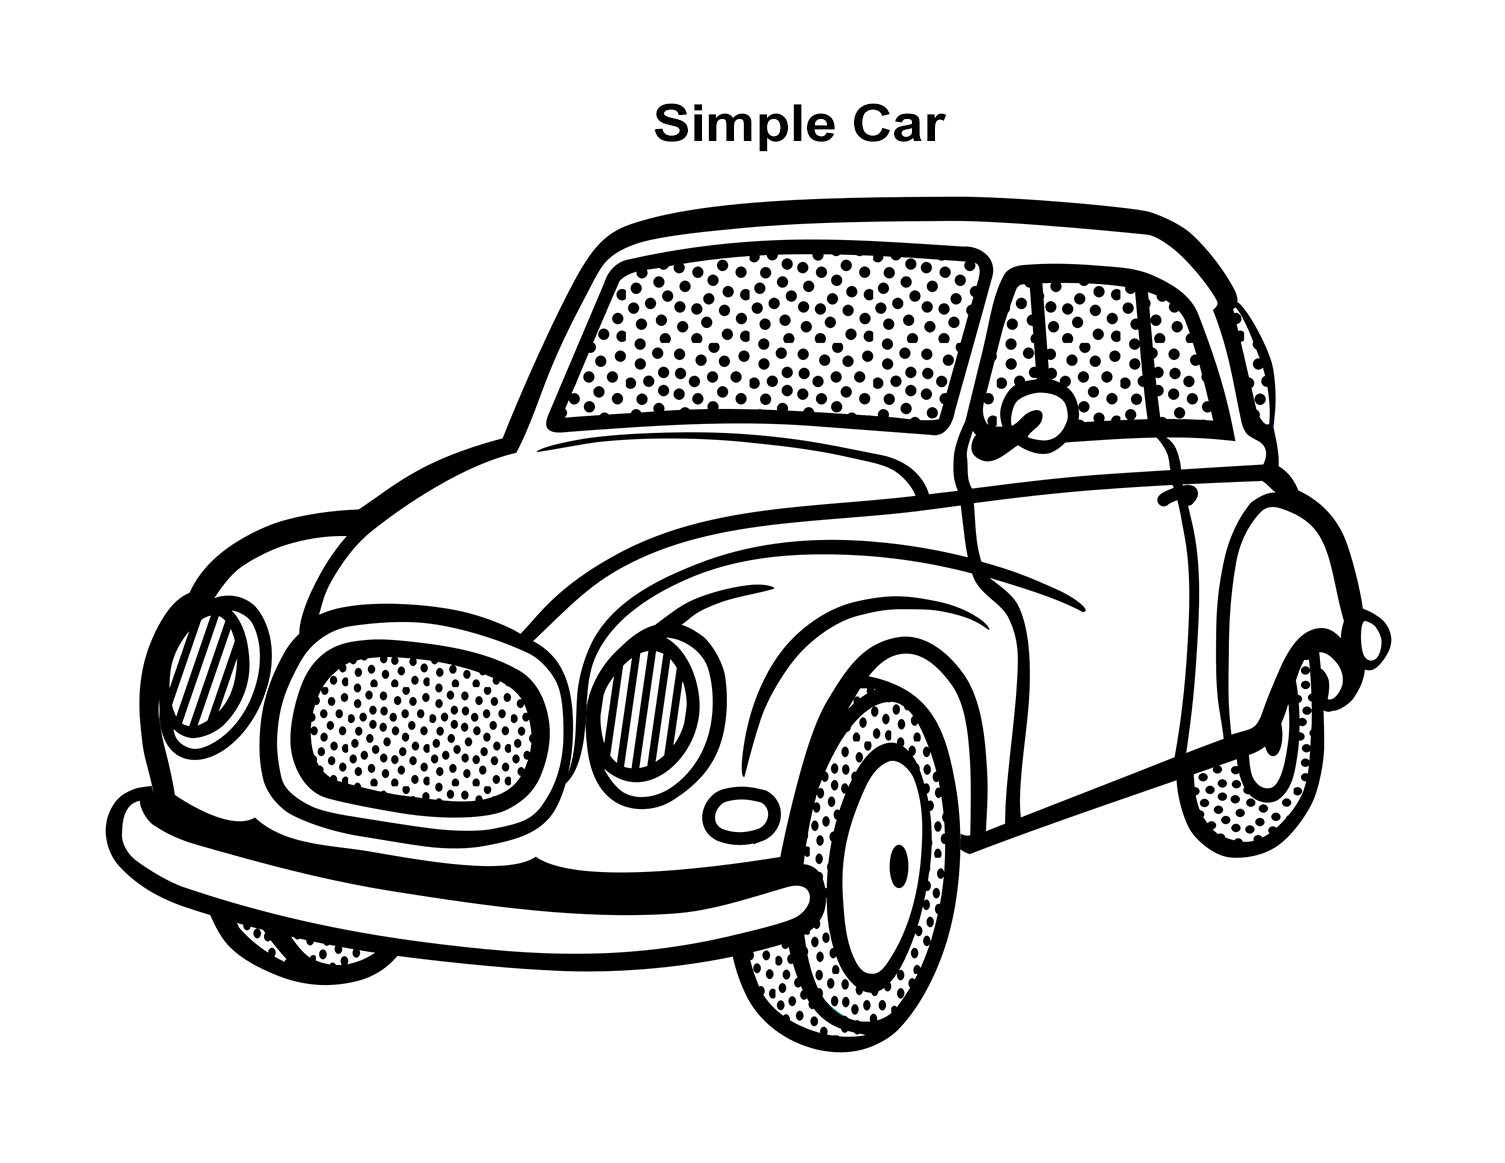 Car Coloring Pages Free Printable Coloring Pages - Cars Coloring Pages | 1163x1505